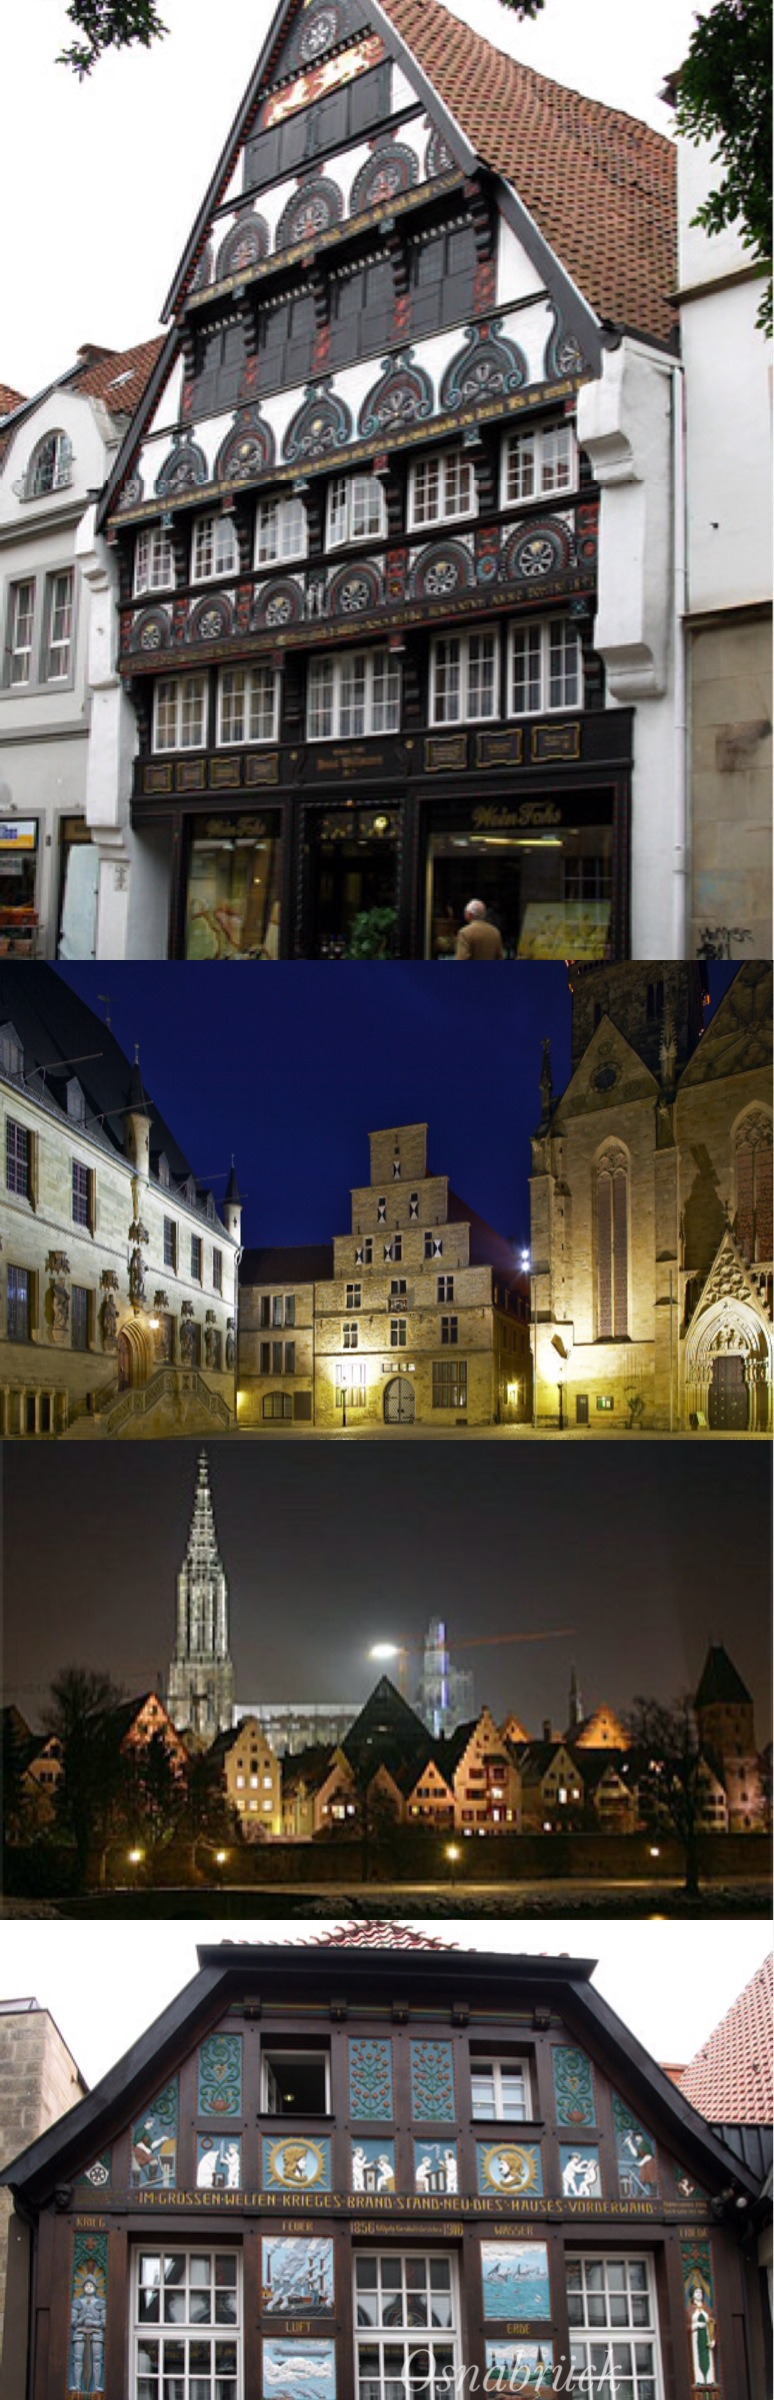 """Osnabrück's political and cultural life believes in the maxim: """"The task of peace – committed to peace"""". After 5 years of negotiations the """"Peace of Westphalia"""" that ended the Thirty Years' War was proclaimed on the steps of the Town Hall in 1648."""